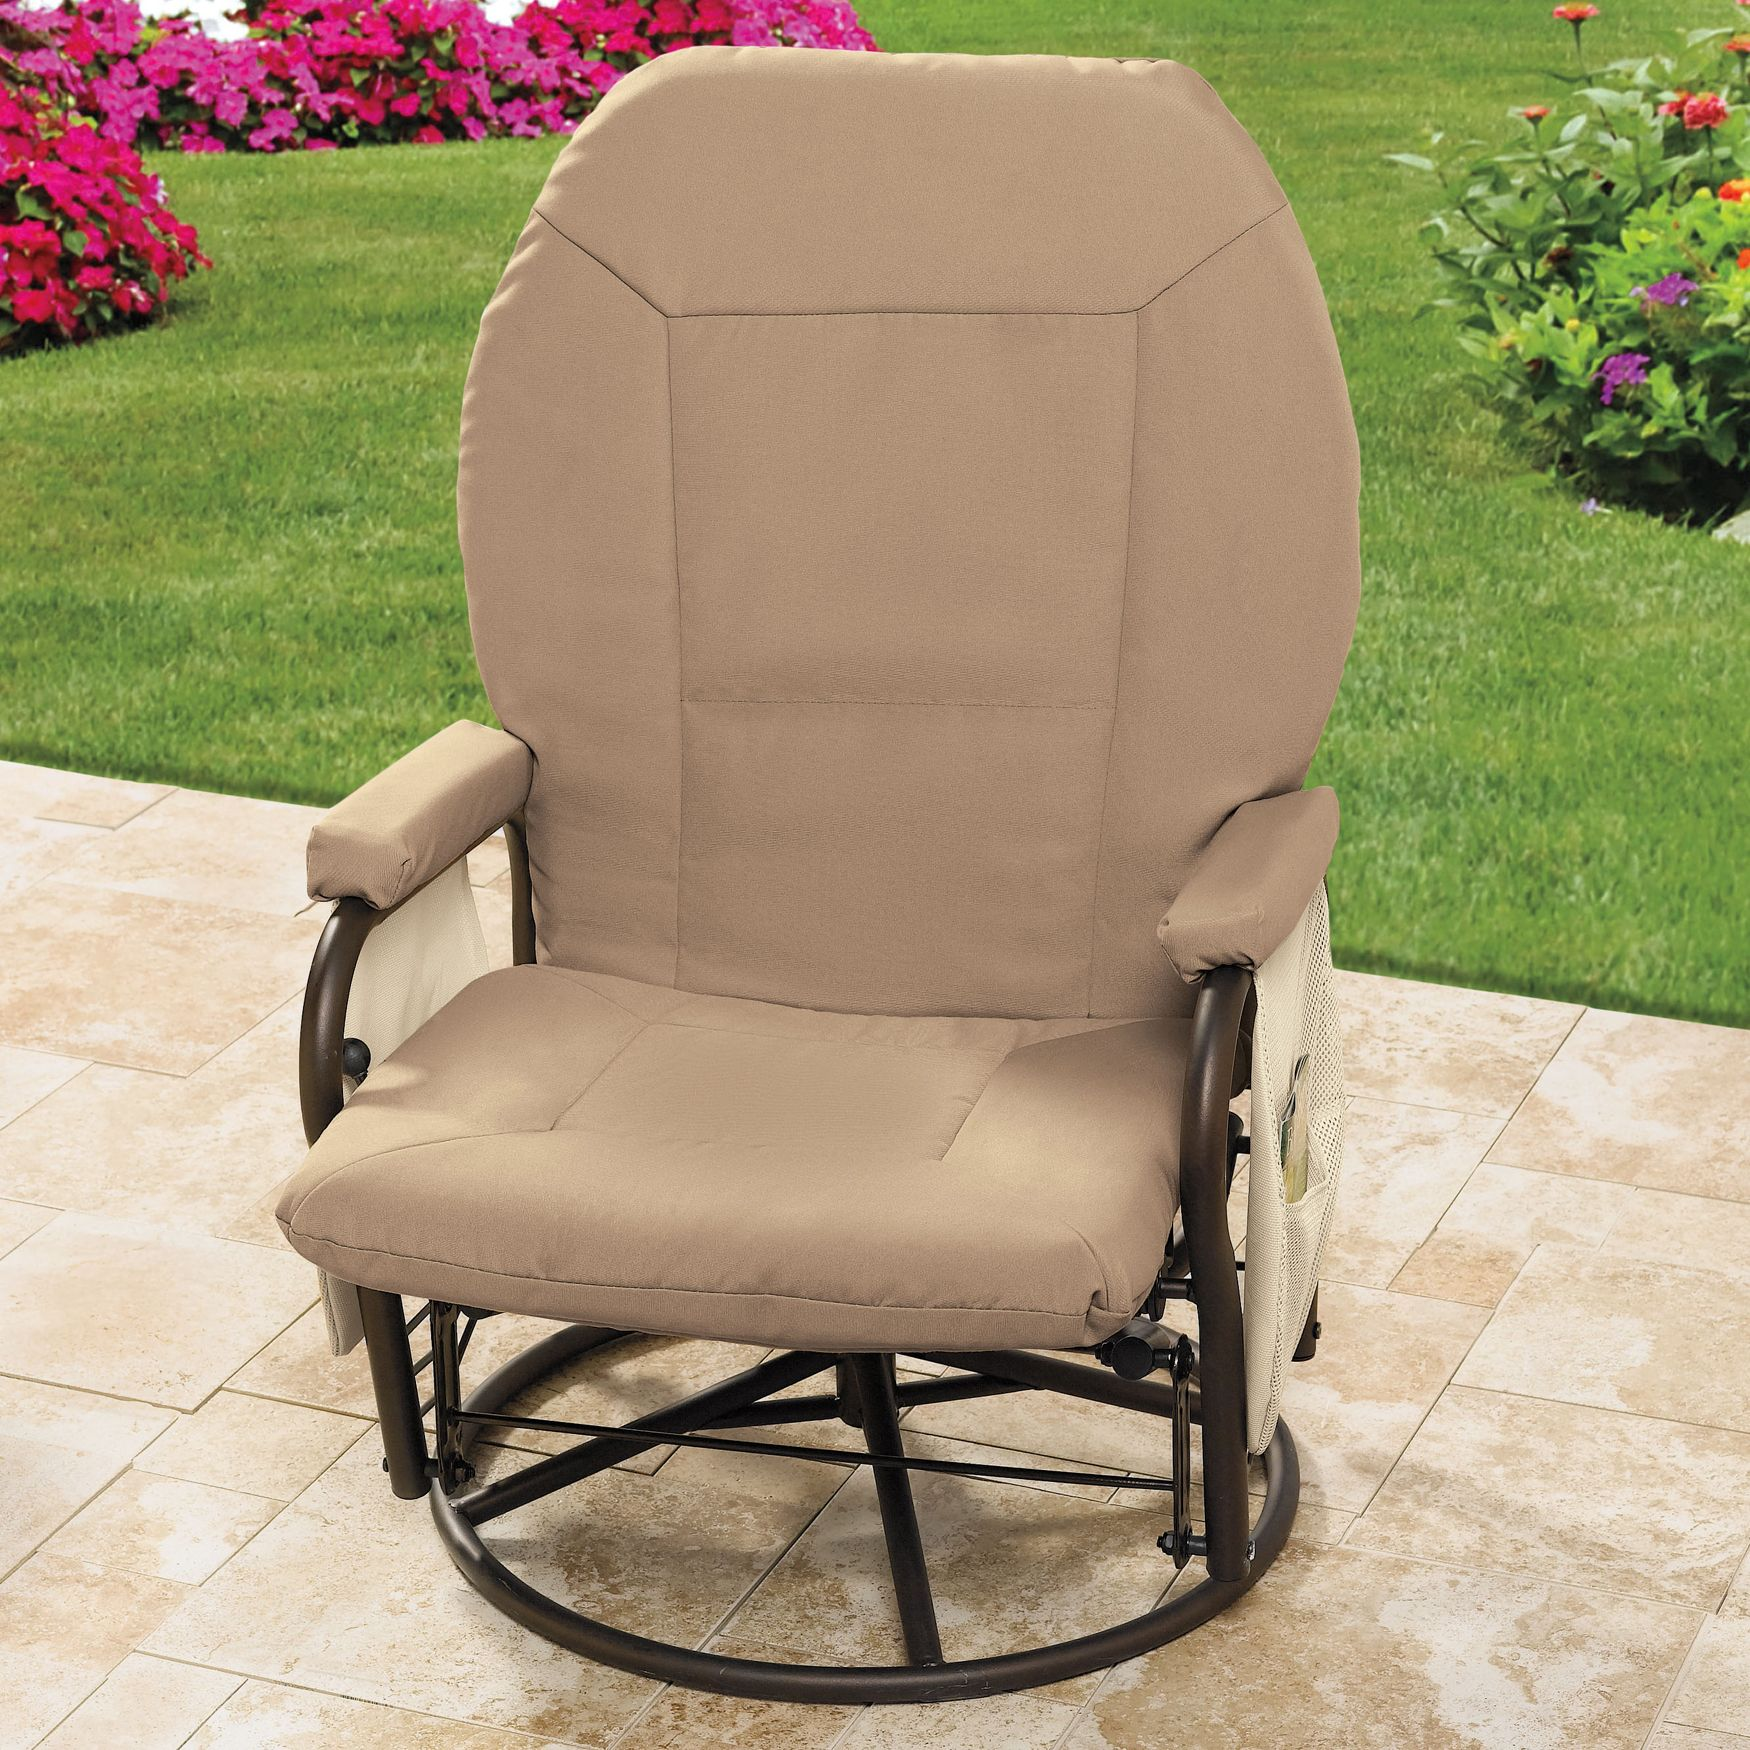 Extra Wide Outdoor Glider Patio Furniture Brylanehome